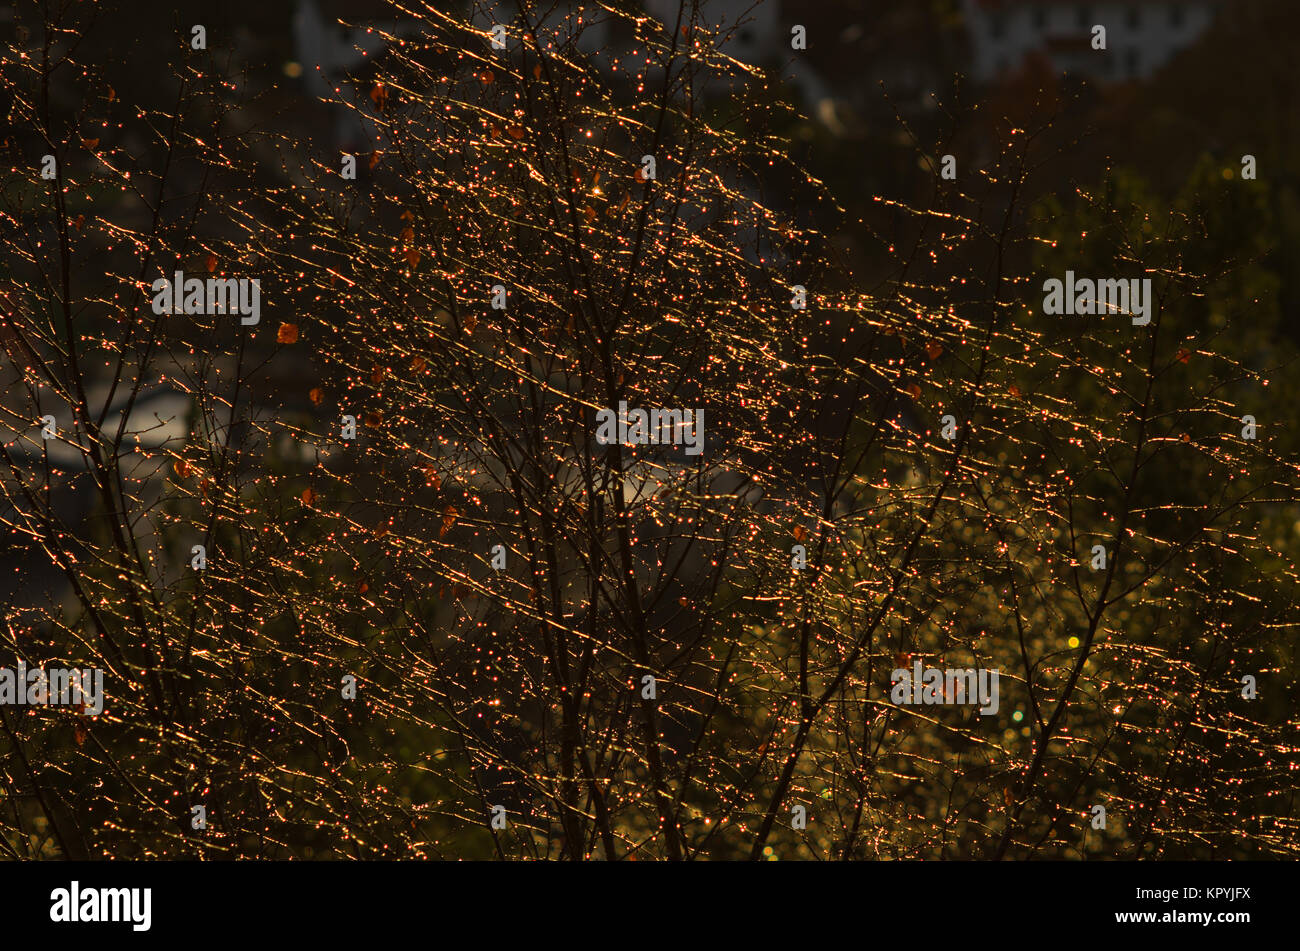 Elevated, high angle view of fragment of the leafless tree, after rain wet and covered by water droplets, and backlighted - Stock Image